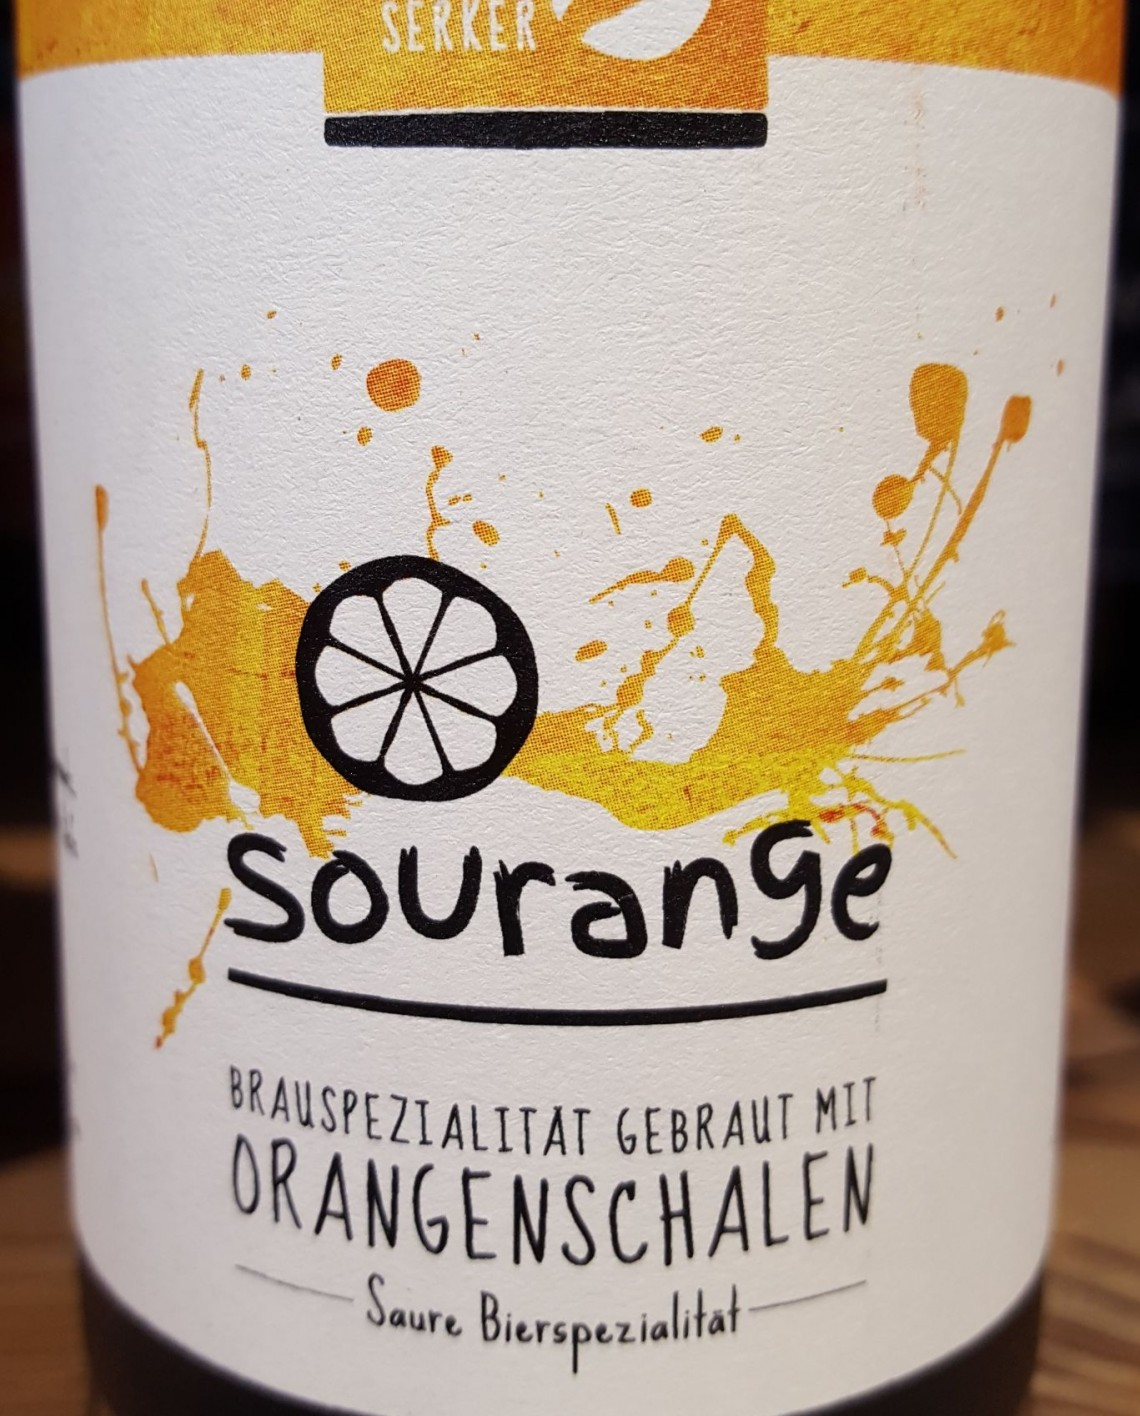 craftbeer-dealer.com_bierserker_sourorange